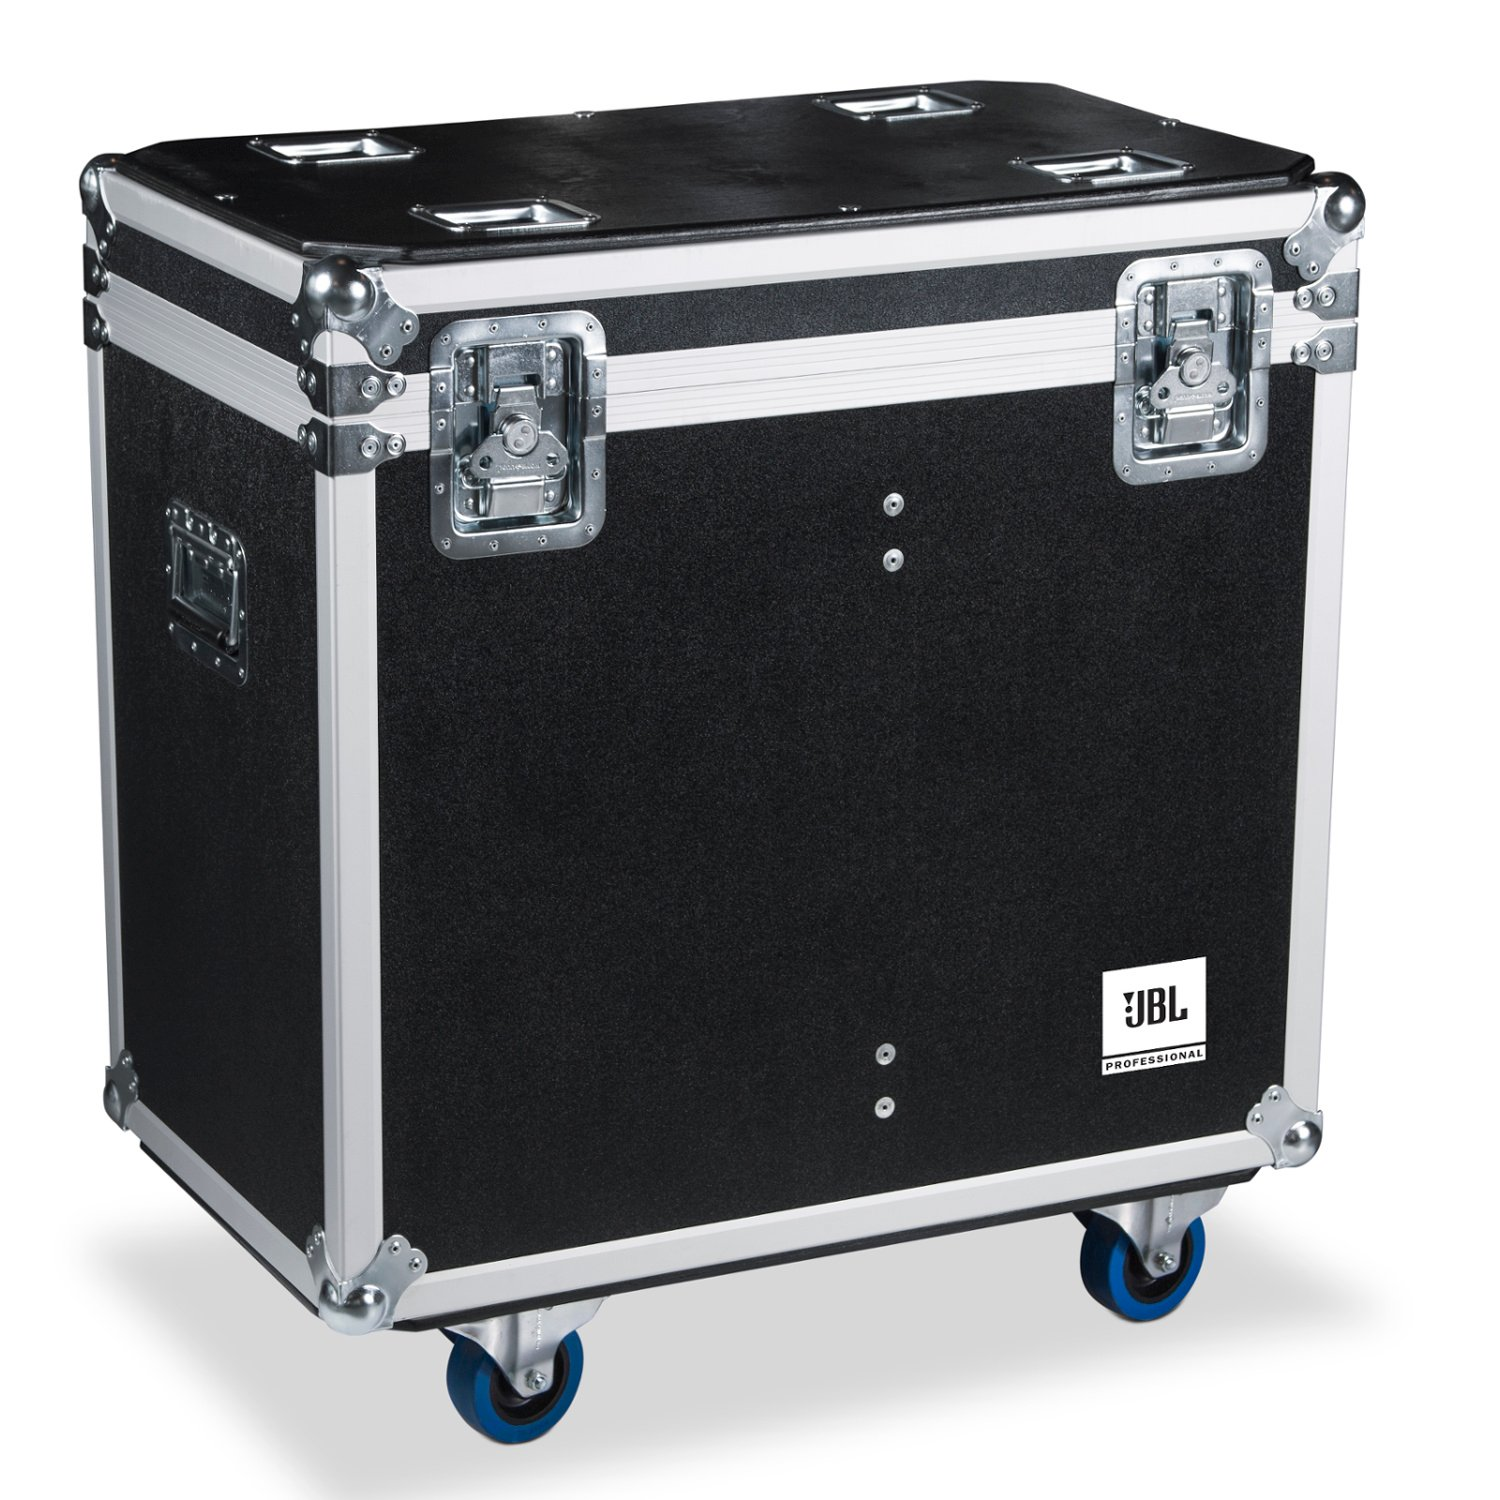 Jbl bags jbl flight eon612 dual flight case for 2 eon612 speakers with hinged - Fabriquer flight case ...